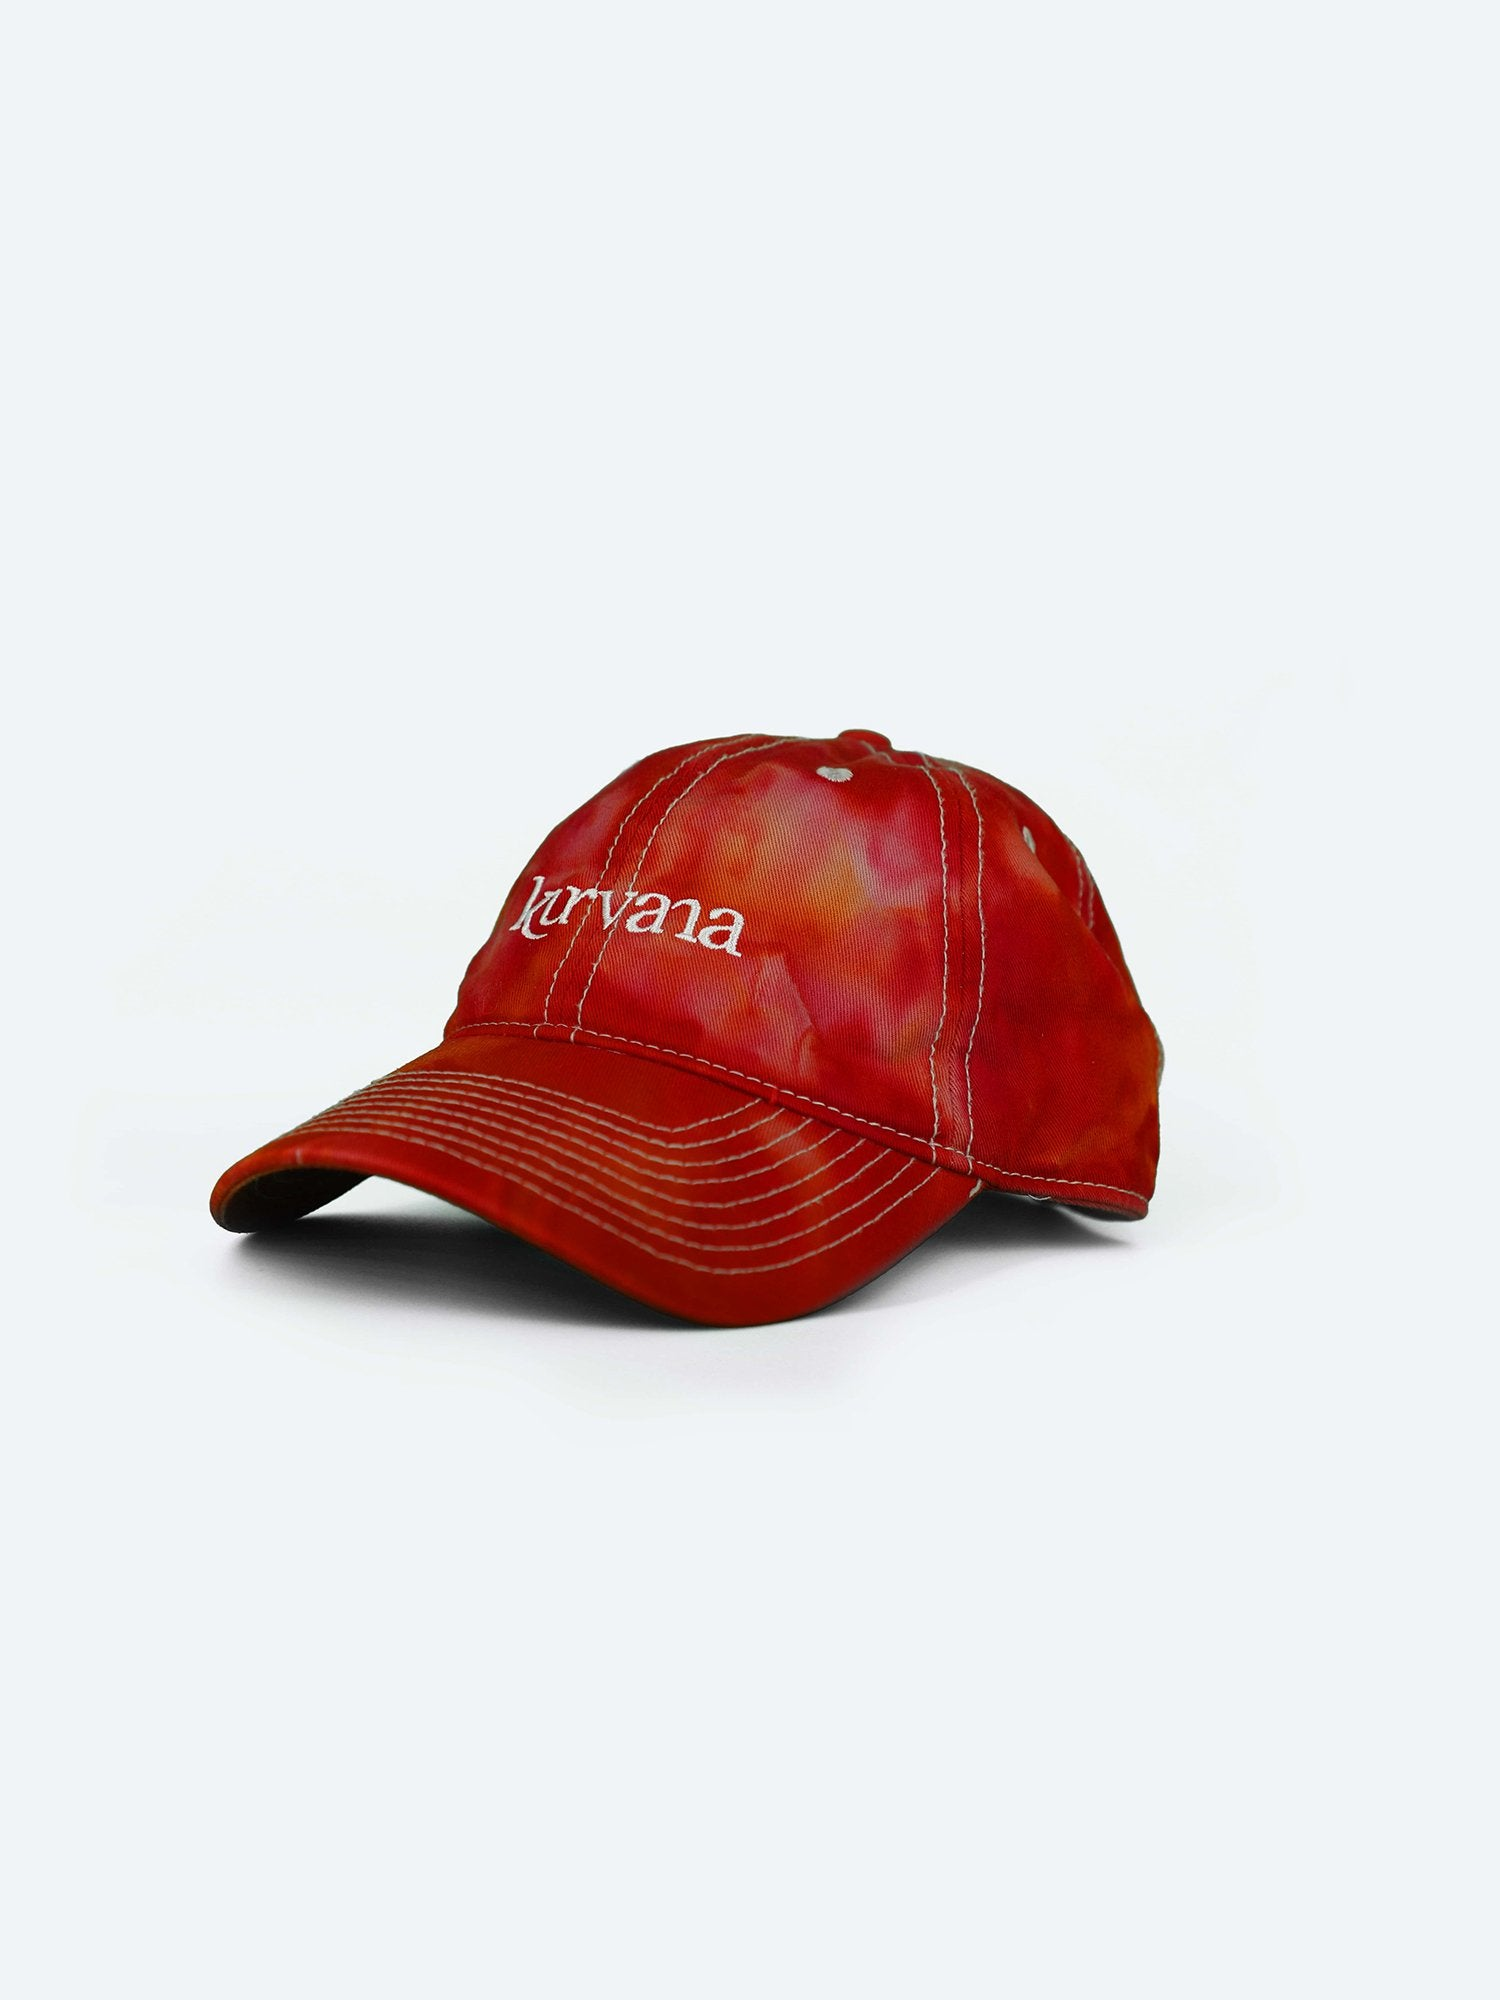 "Classic Kurvana ""Dad Hat"" - Red Tie-Dye - KurvanaCBD"